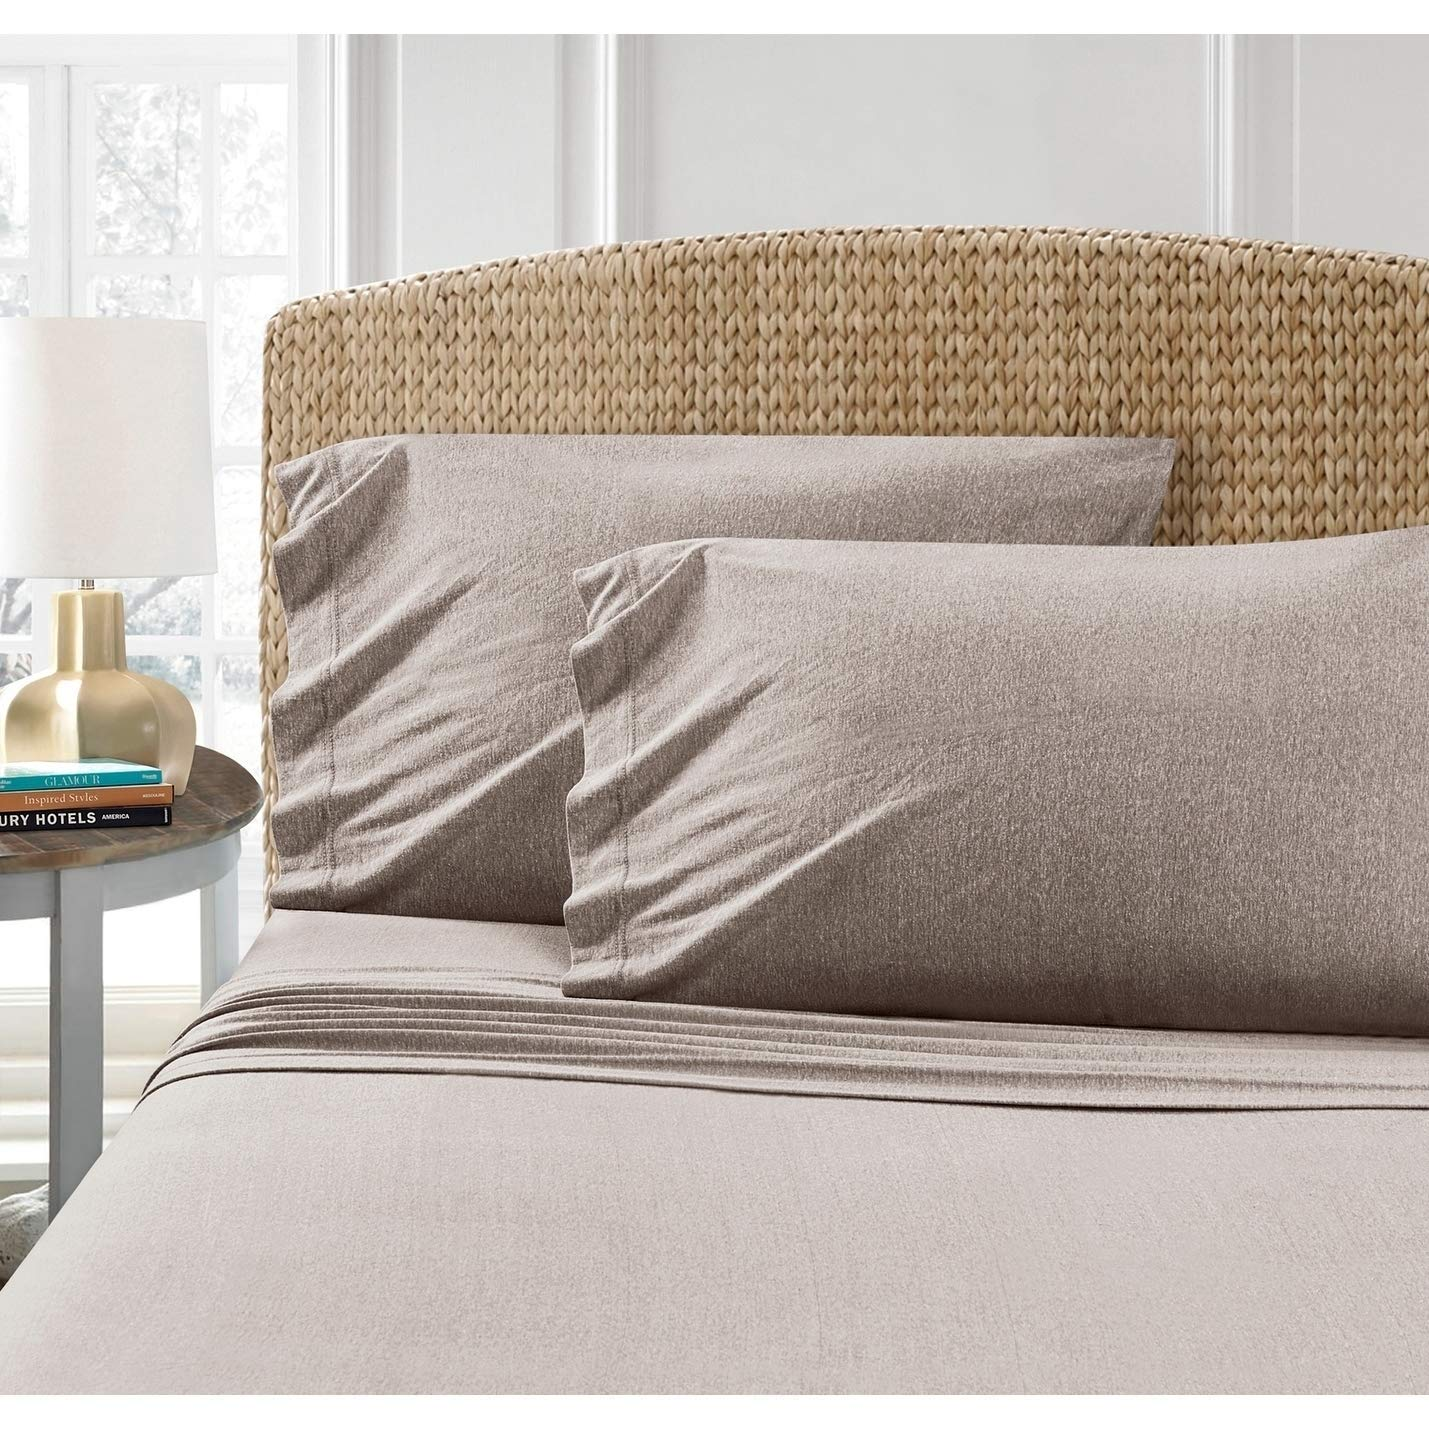 PH 4 Piece Queen Taupe Sheet Set, Casual Style, Jersey Knit Material, Heathered Cotton Blend, Solid Color Pattern, Durable, Soft, Deep Pocket, Fully Elasticized Fitted, Machine Wash - Light Brown